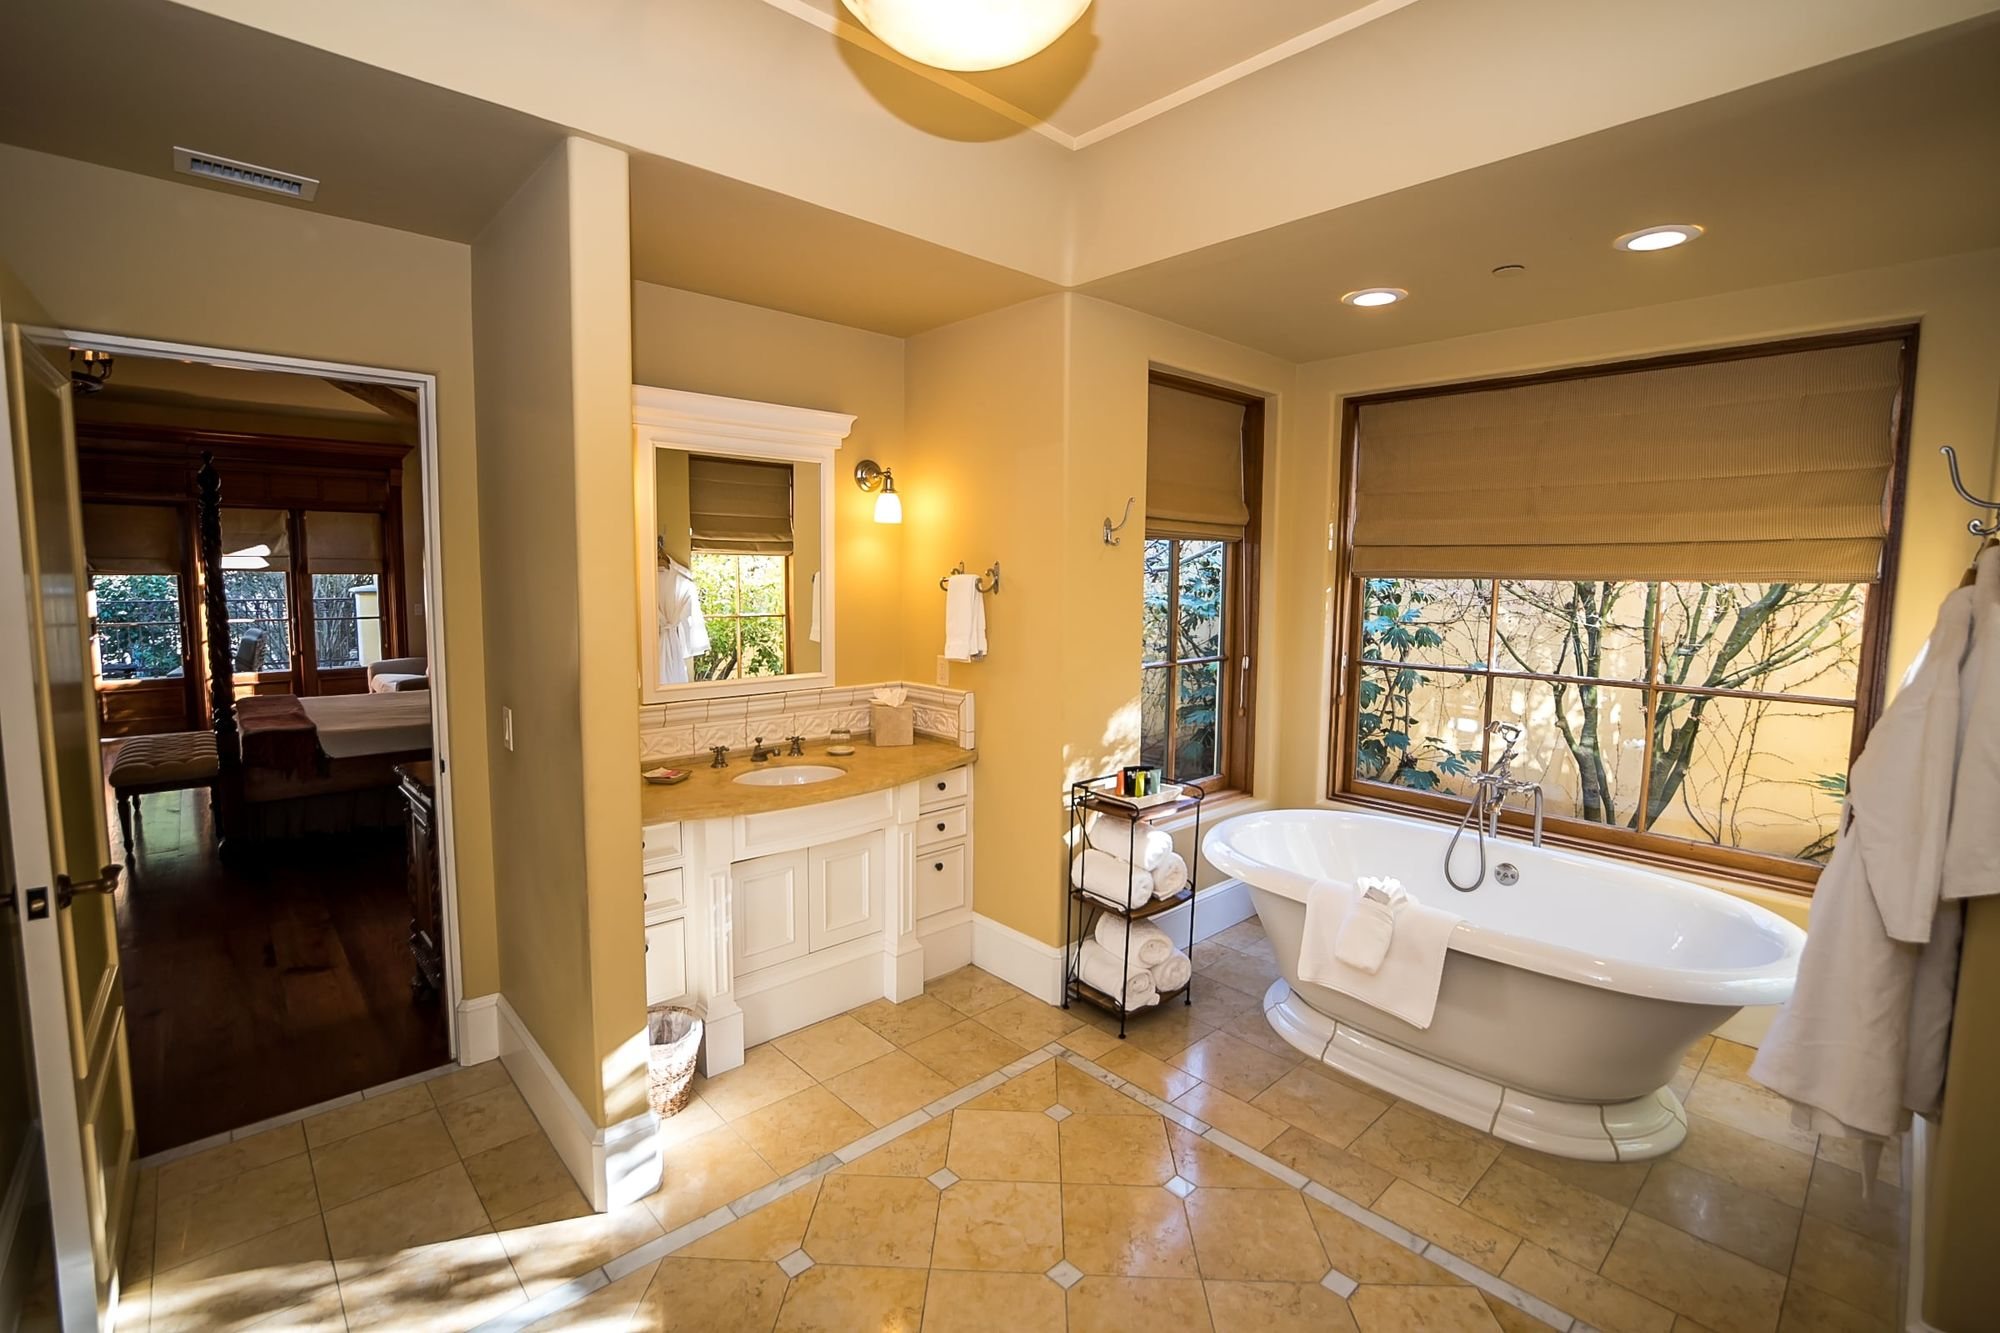 Bathroom with vanity, small shelf stacked with rolled towels and a garden tub